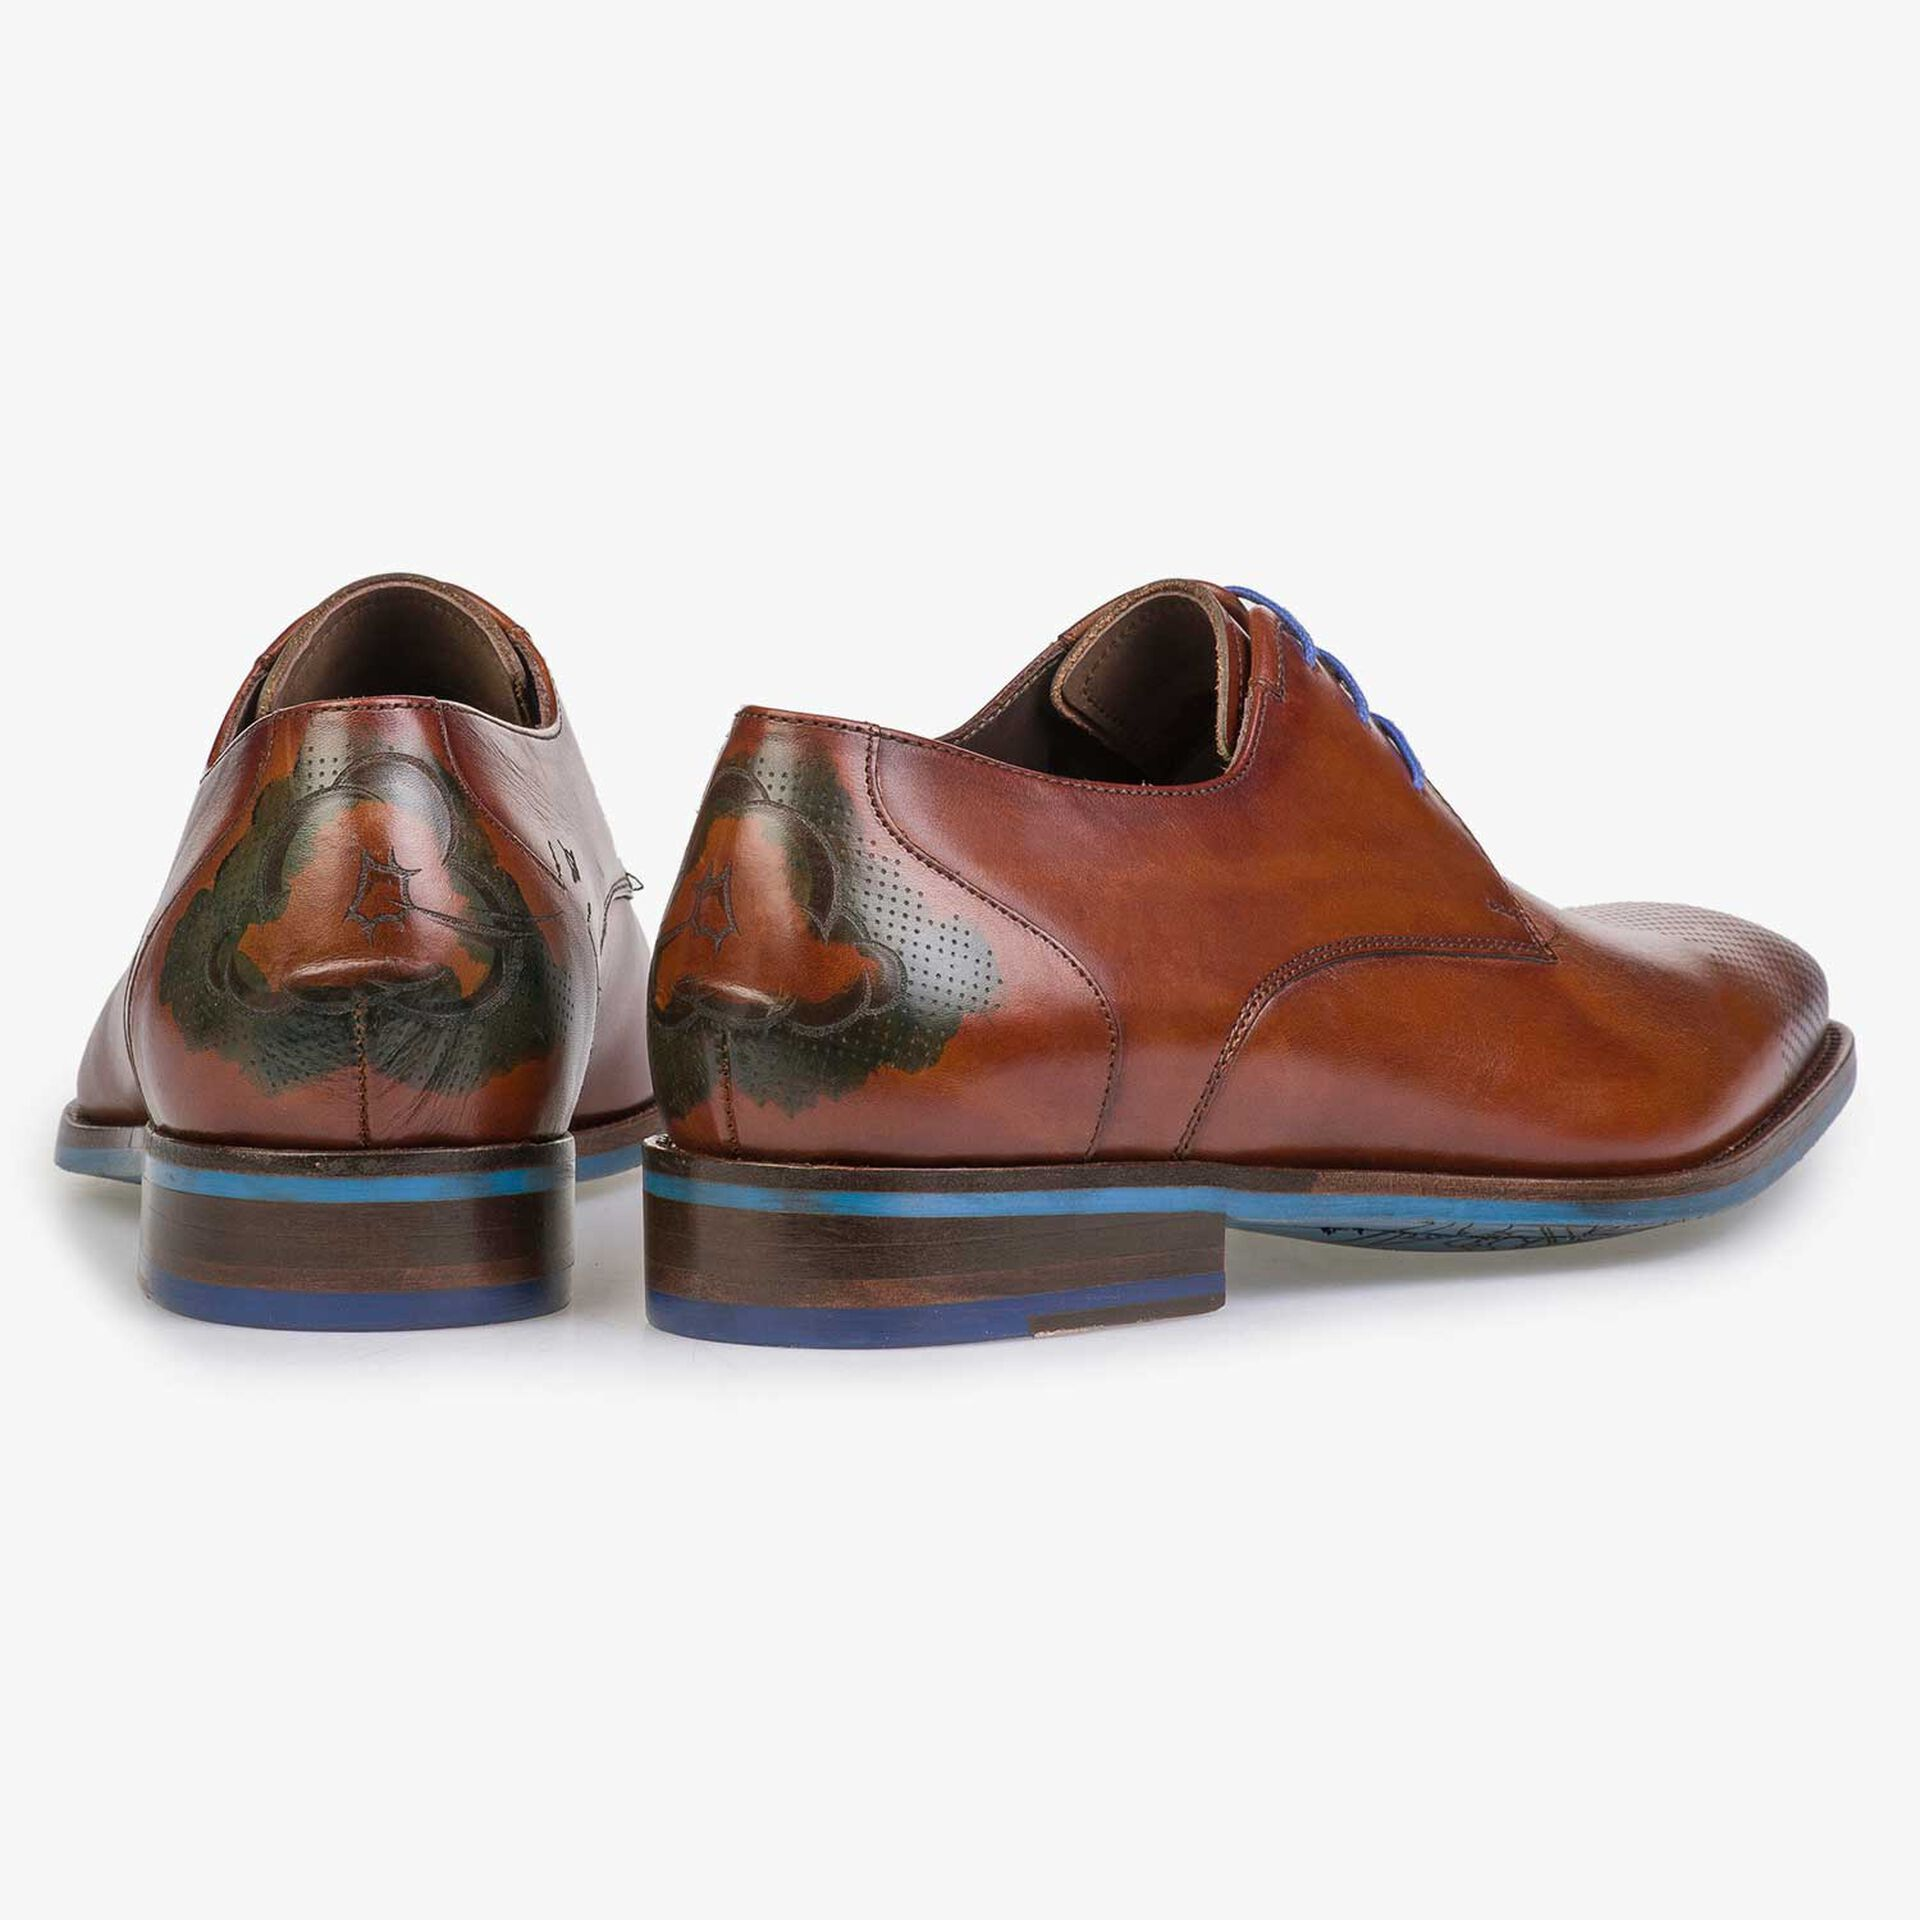 Cognac-coloured leather lace shoe with cloud pattern